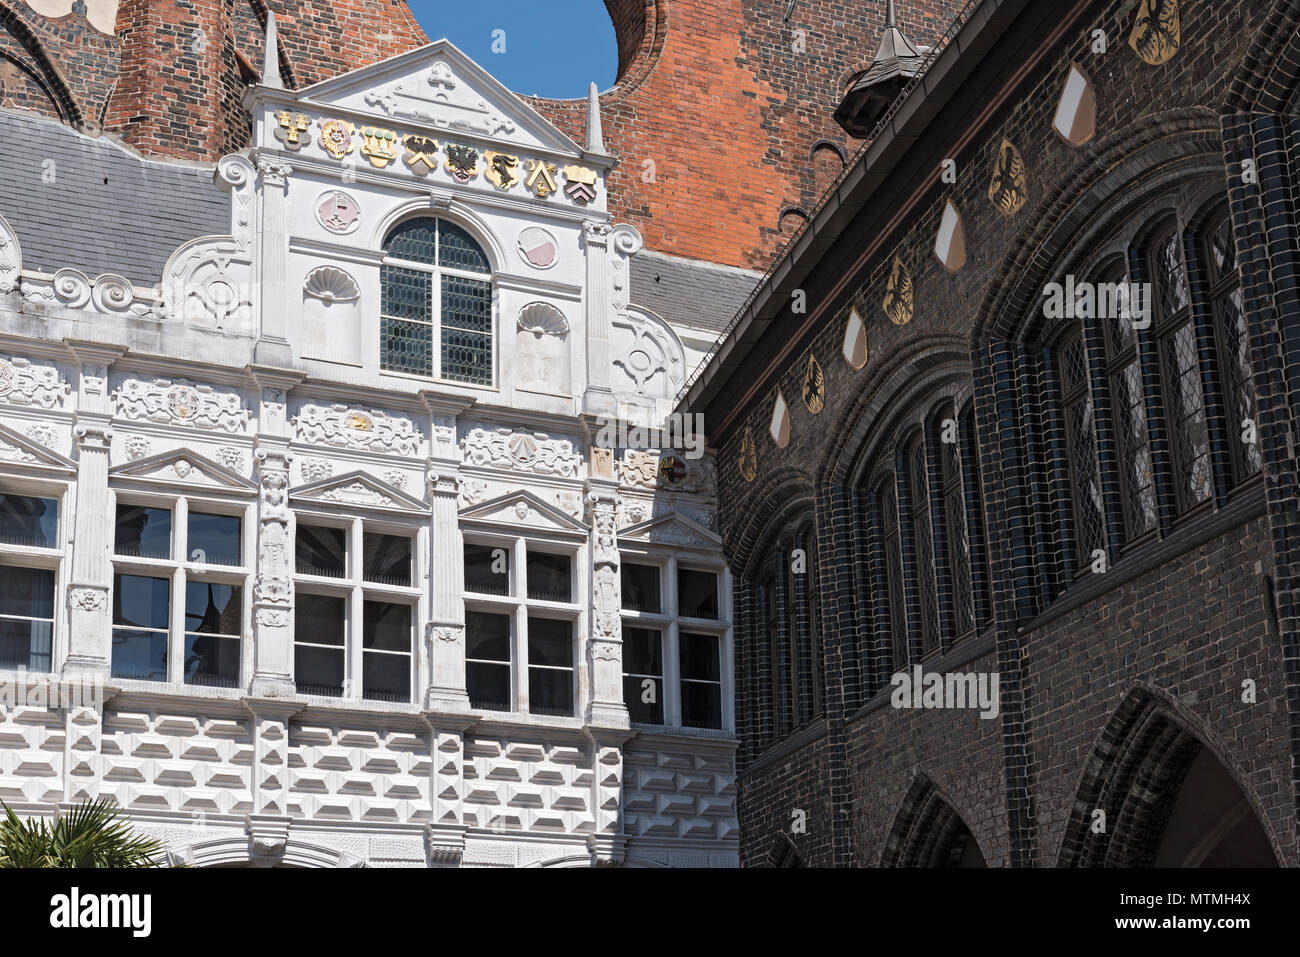 Town hall at the Markttwiete in Lubeck, germany - Stock Image